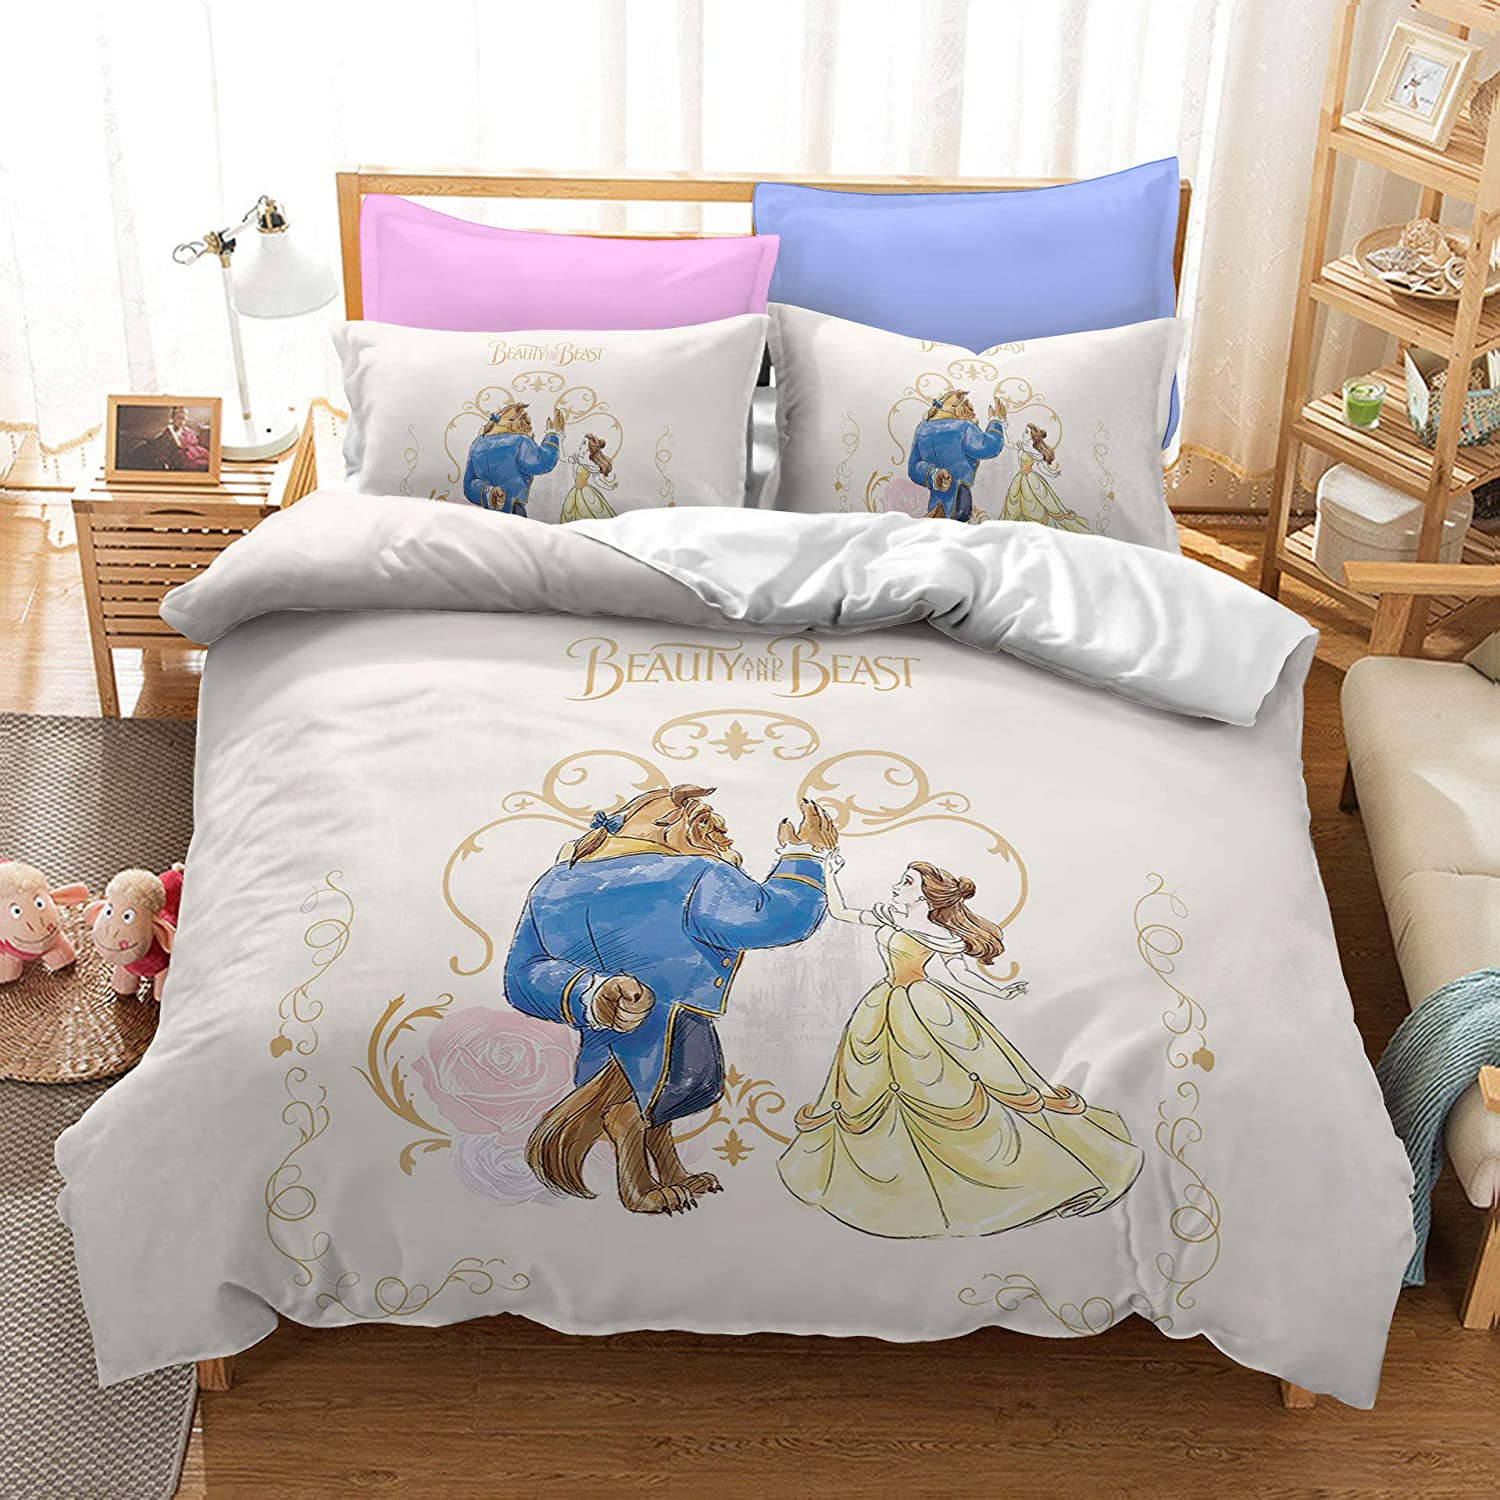 Amazon Com Mulmf Beauty And The Beast Printed Girls Quilt Comforter Sets With Pillowcases Child Bedding Queen 3 Pcs Home Kitchen